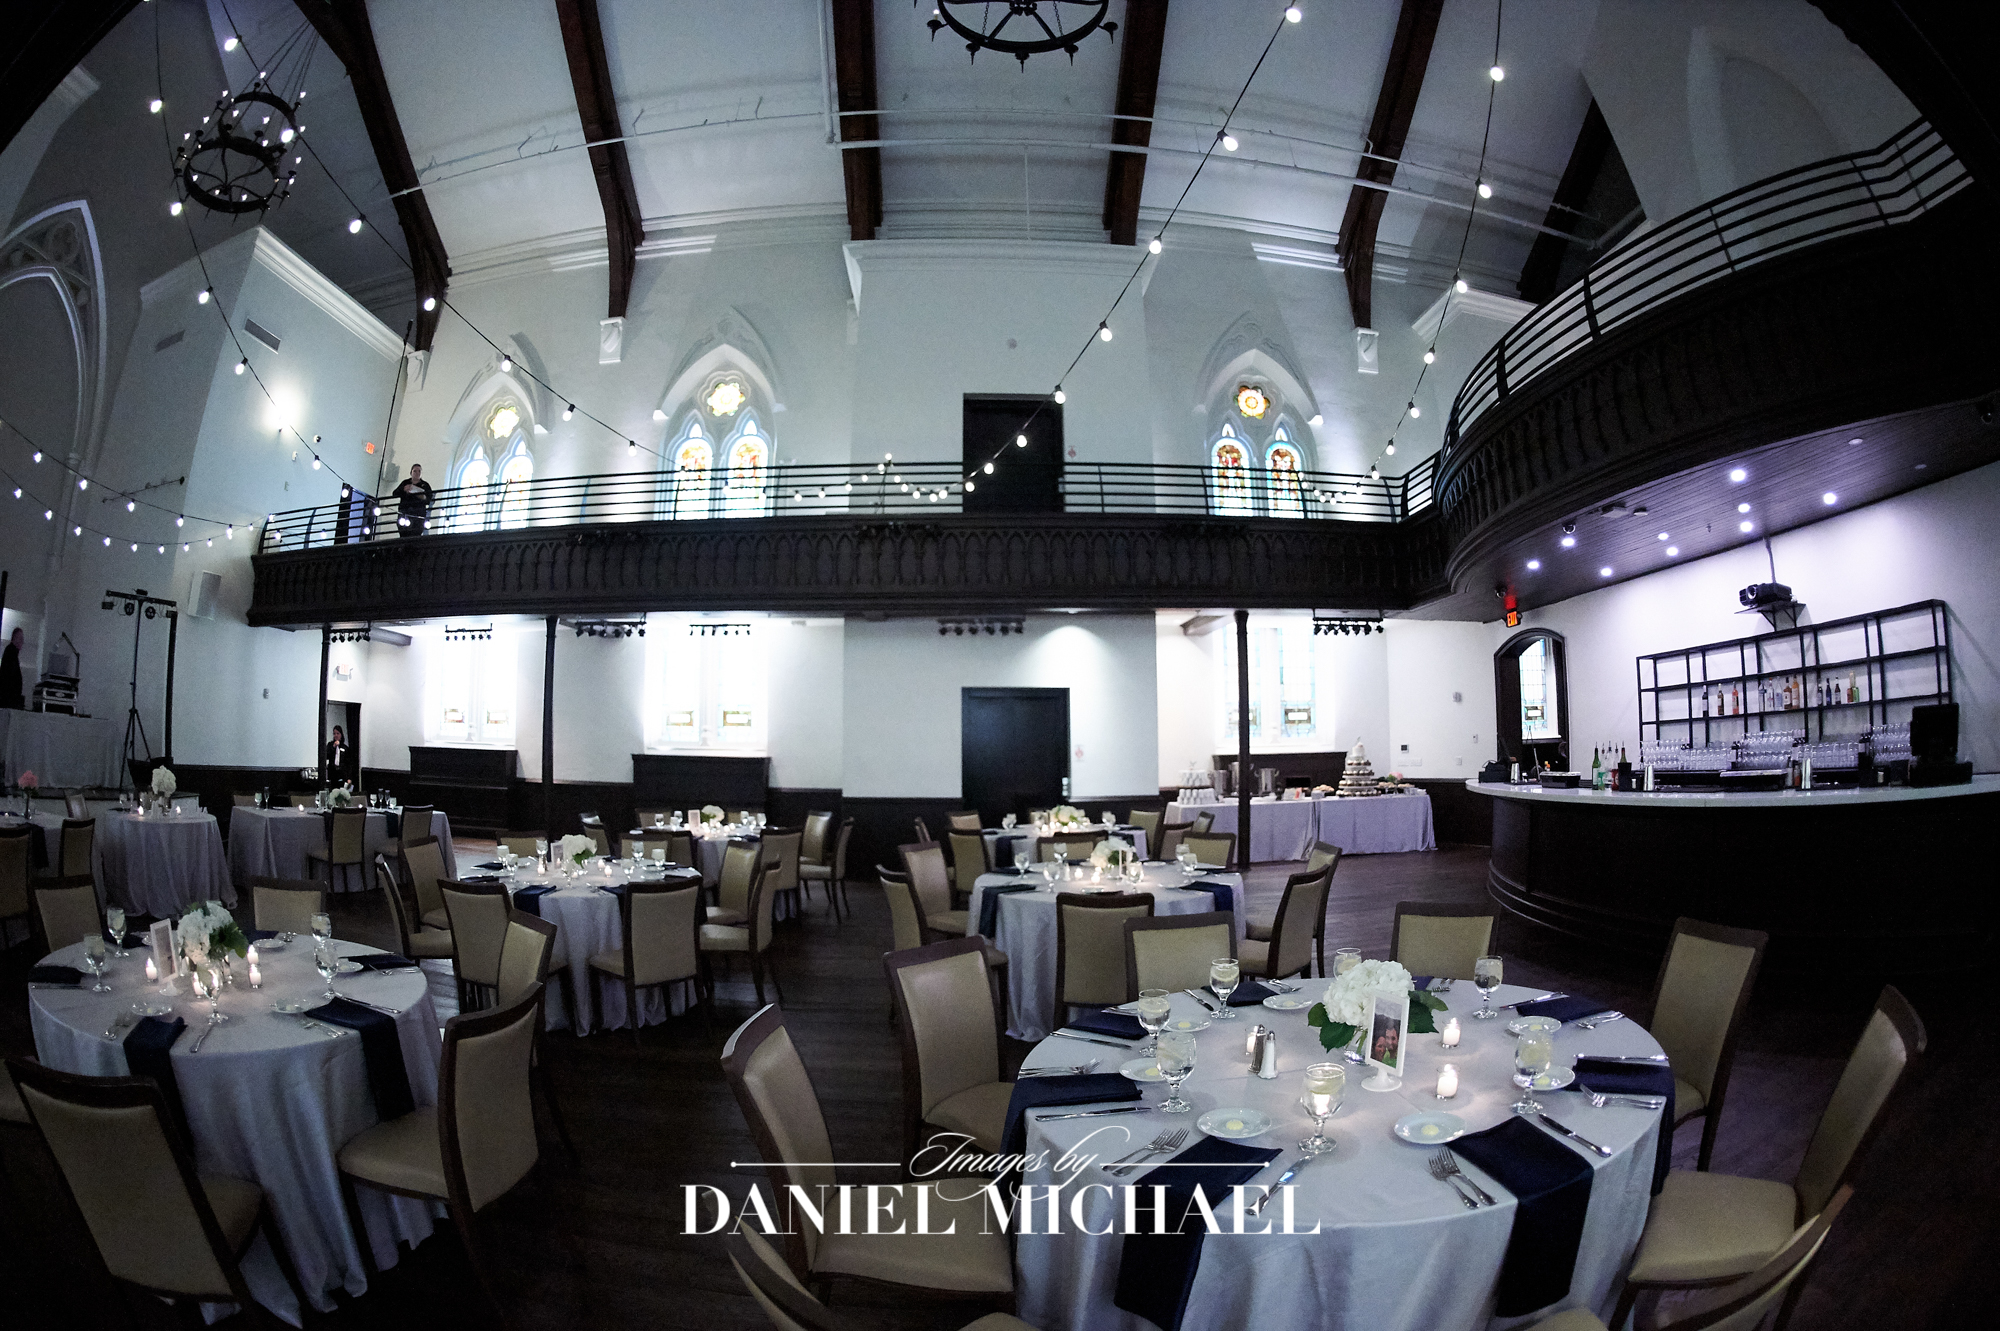 The Transept Wedding Reception Venue